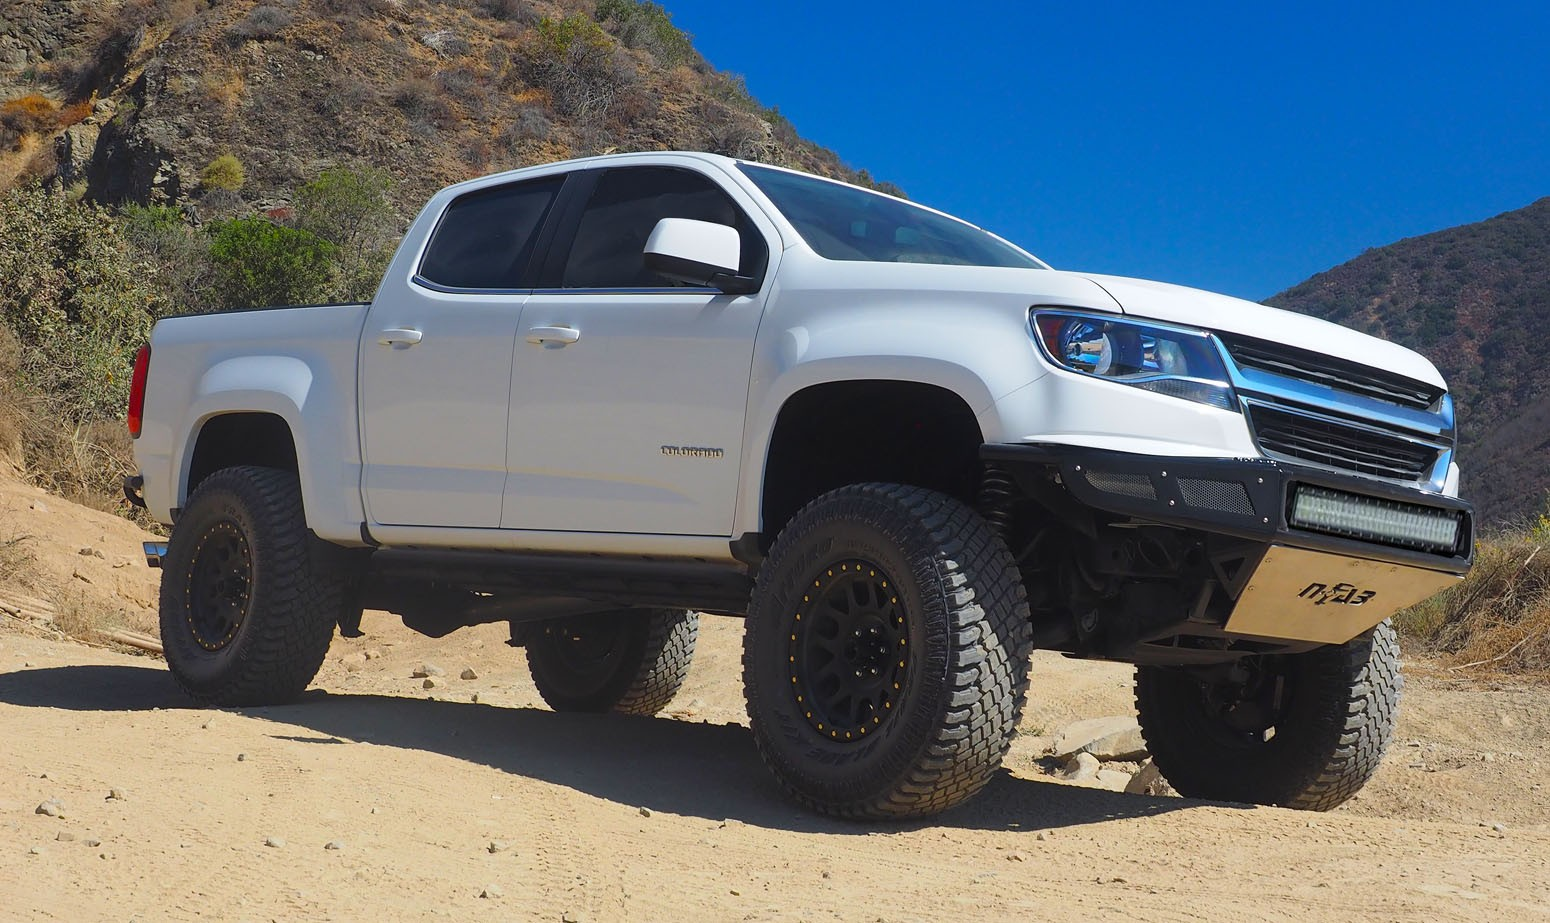 2015 17 Chevy Colorado Canyon 2wd 6 5 Lift Kit W Fox Coil Over And Shocks Southern Autosport